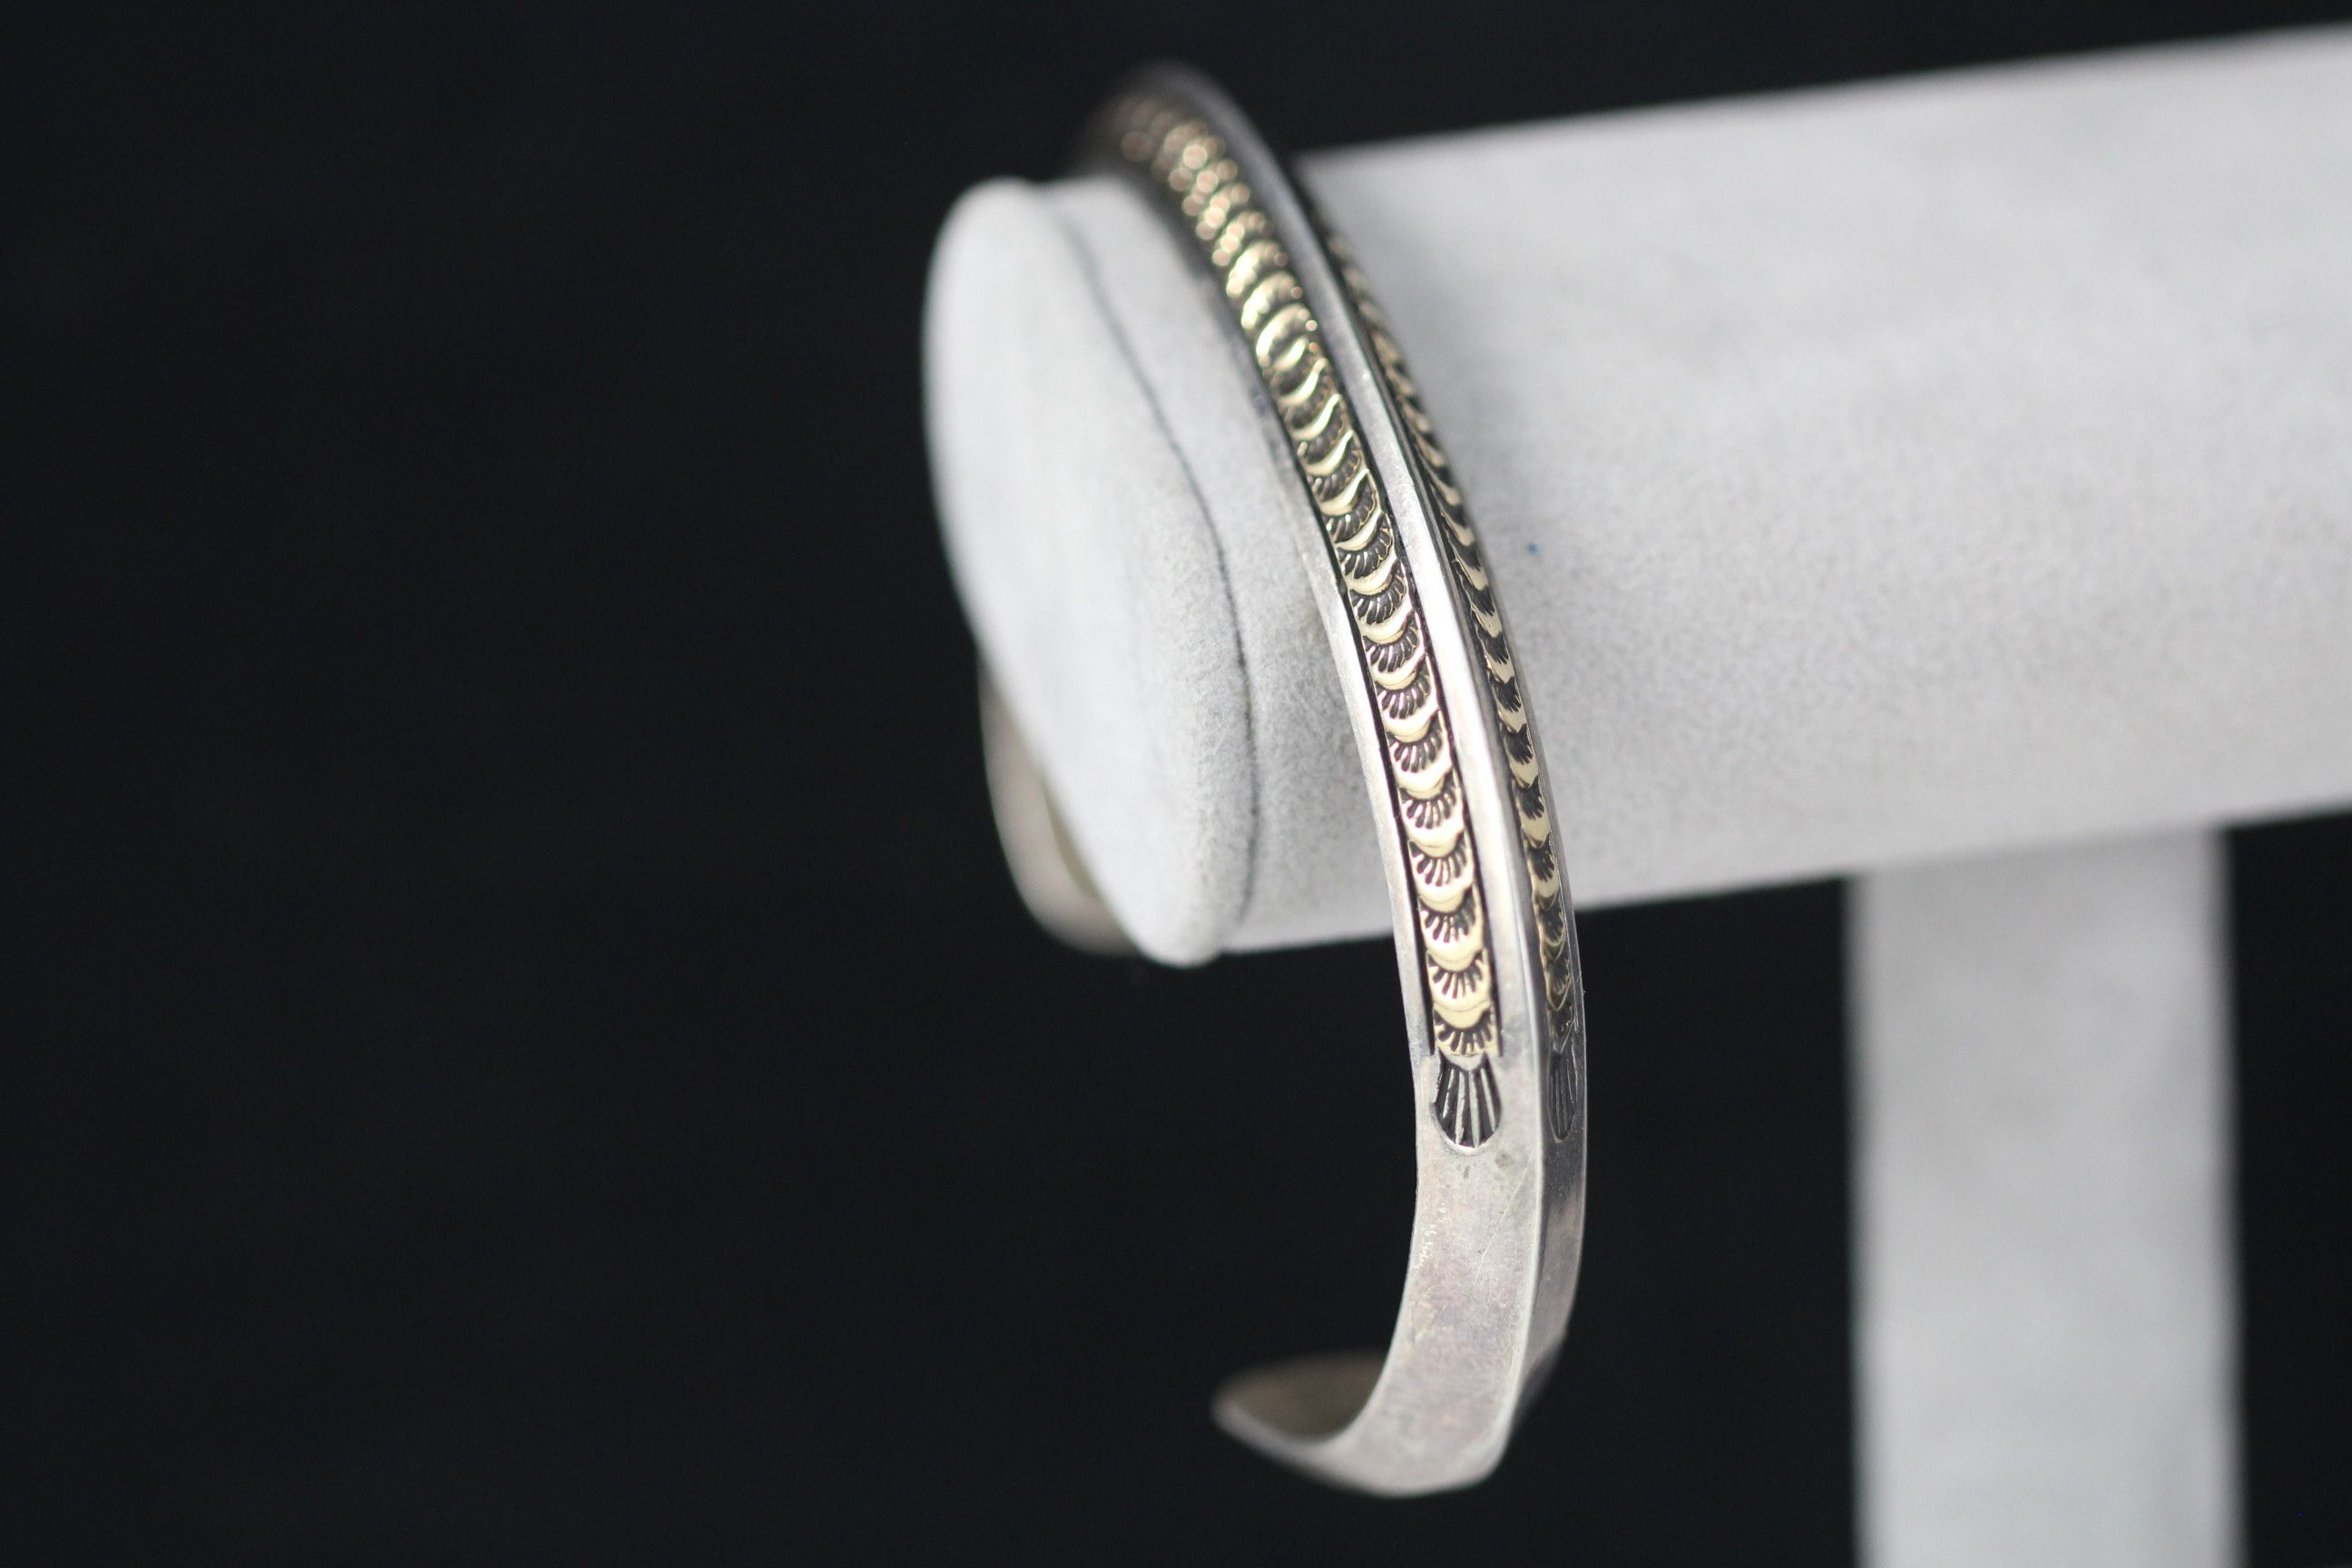 bracelet bracelets connections bangles chamilia bangle silver bar small in gold oxidized sterling and